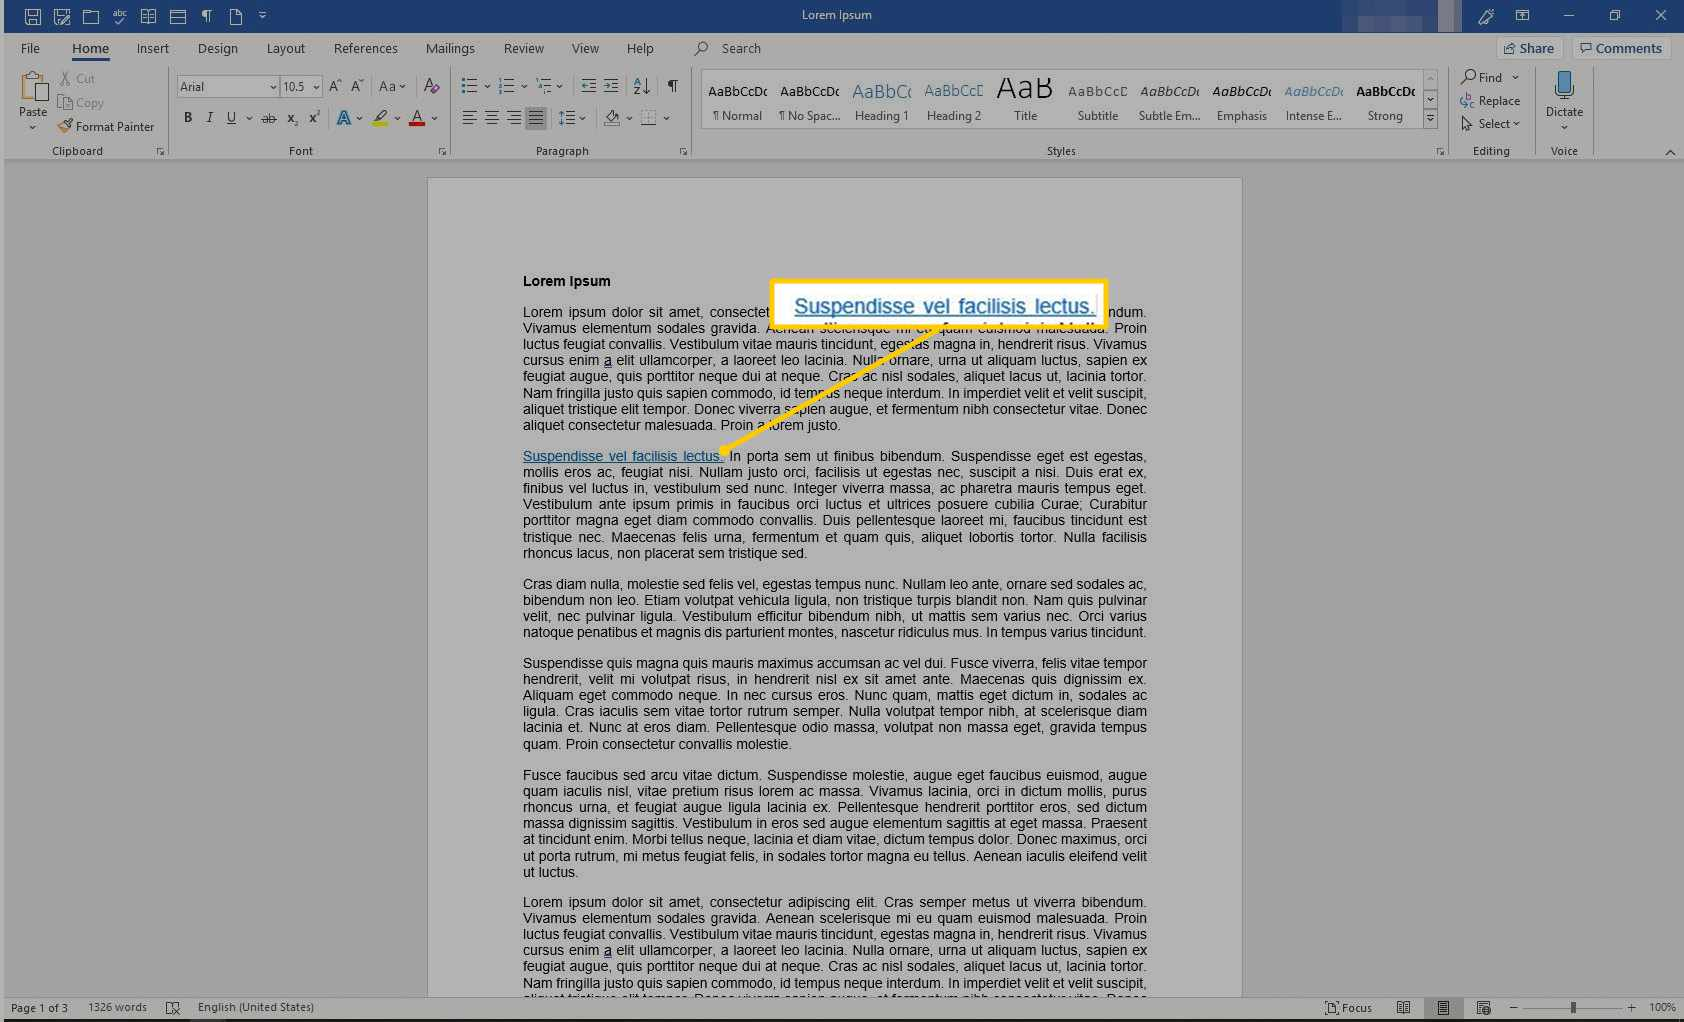 Linked text in Word